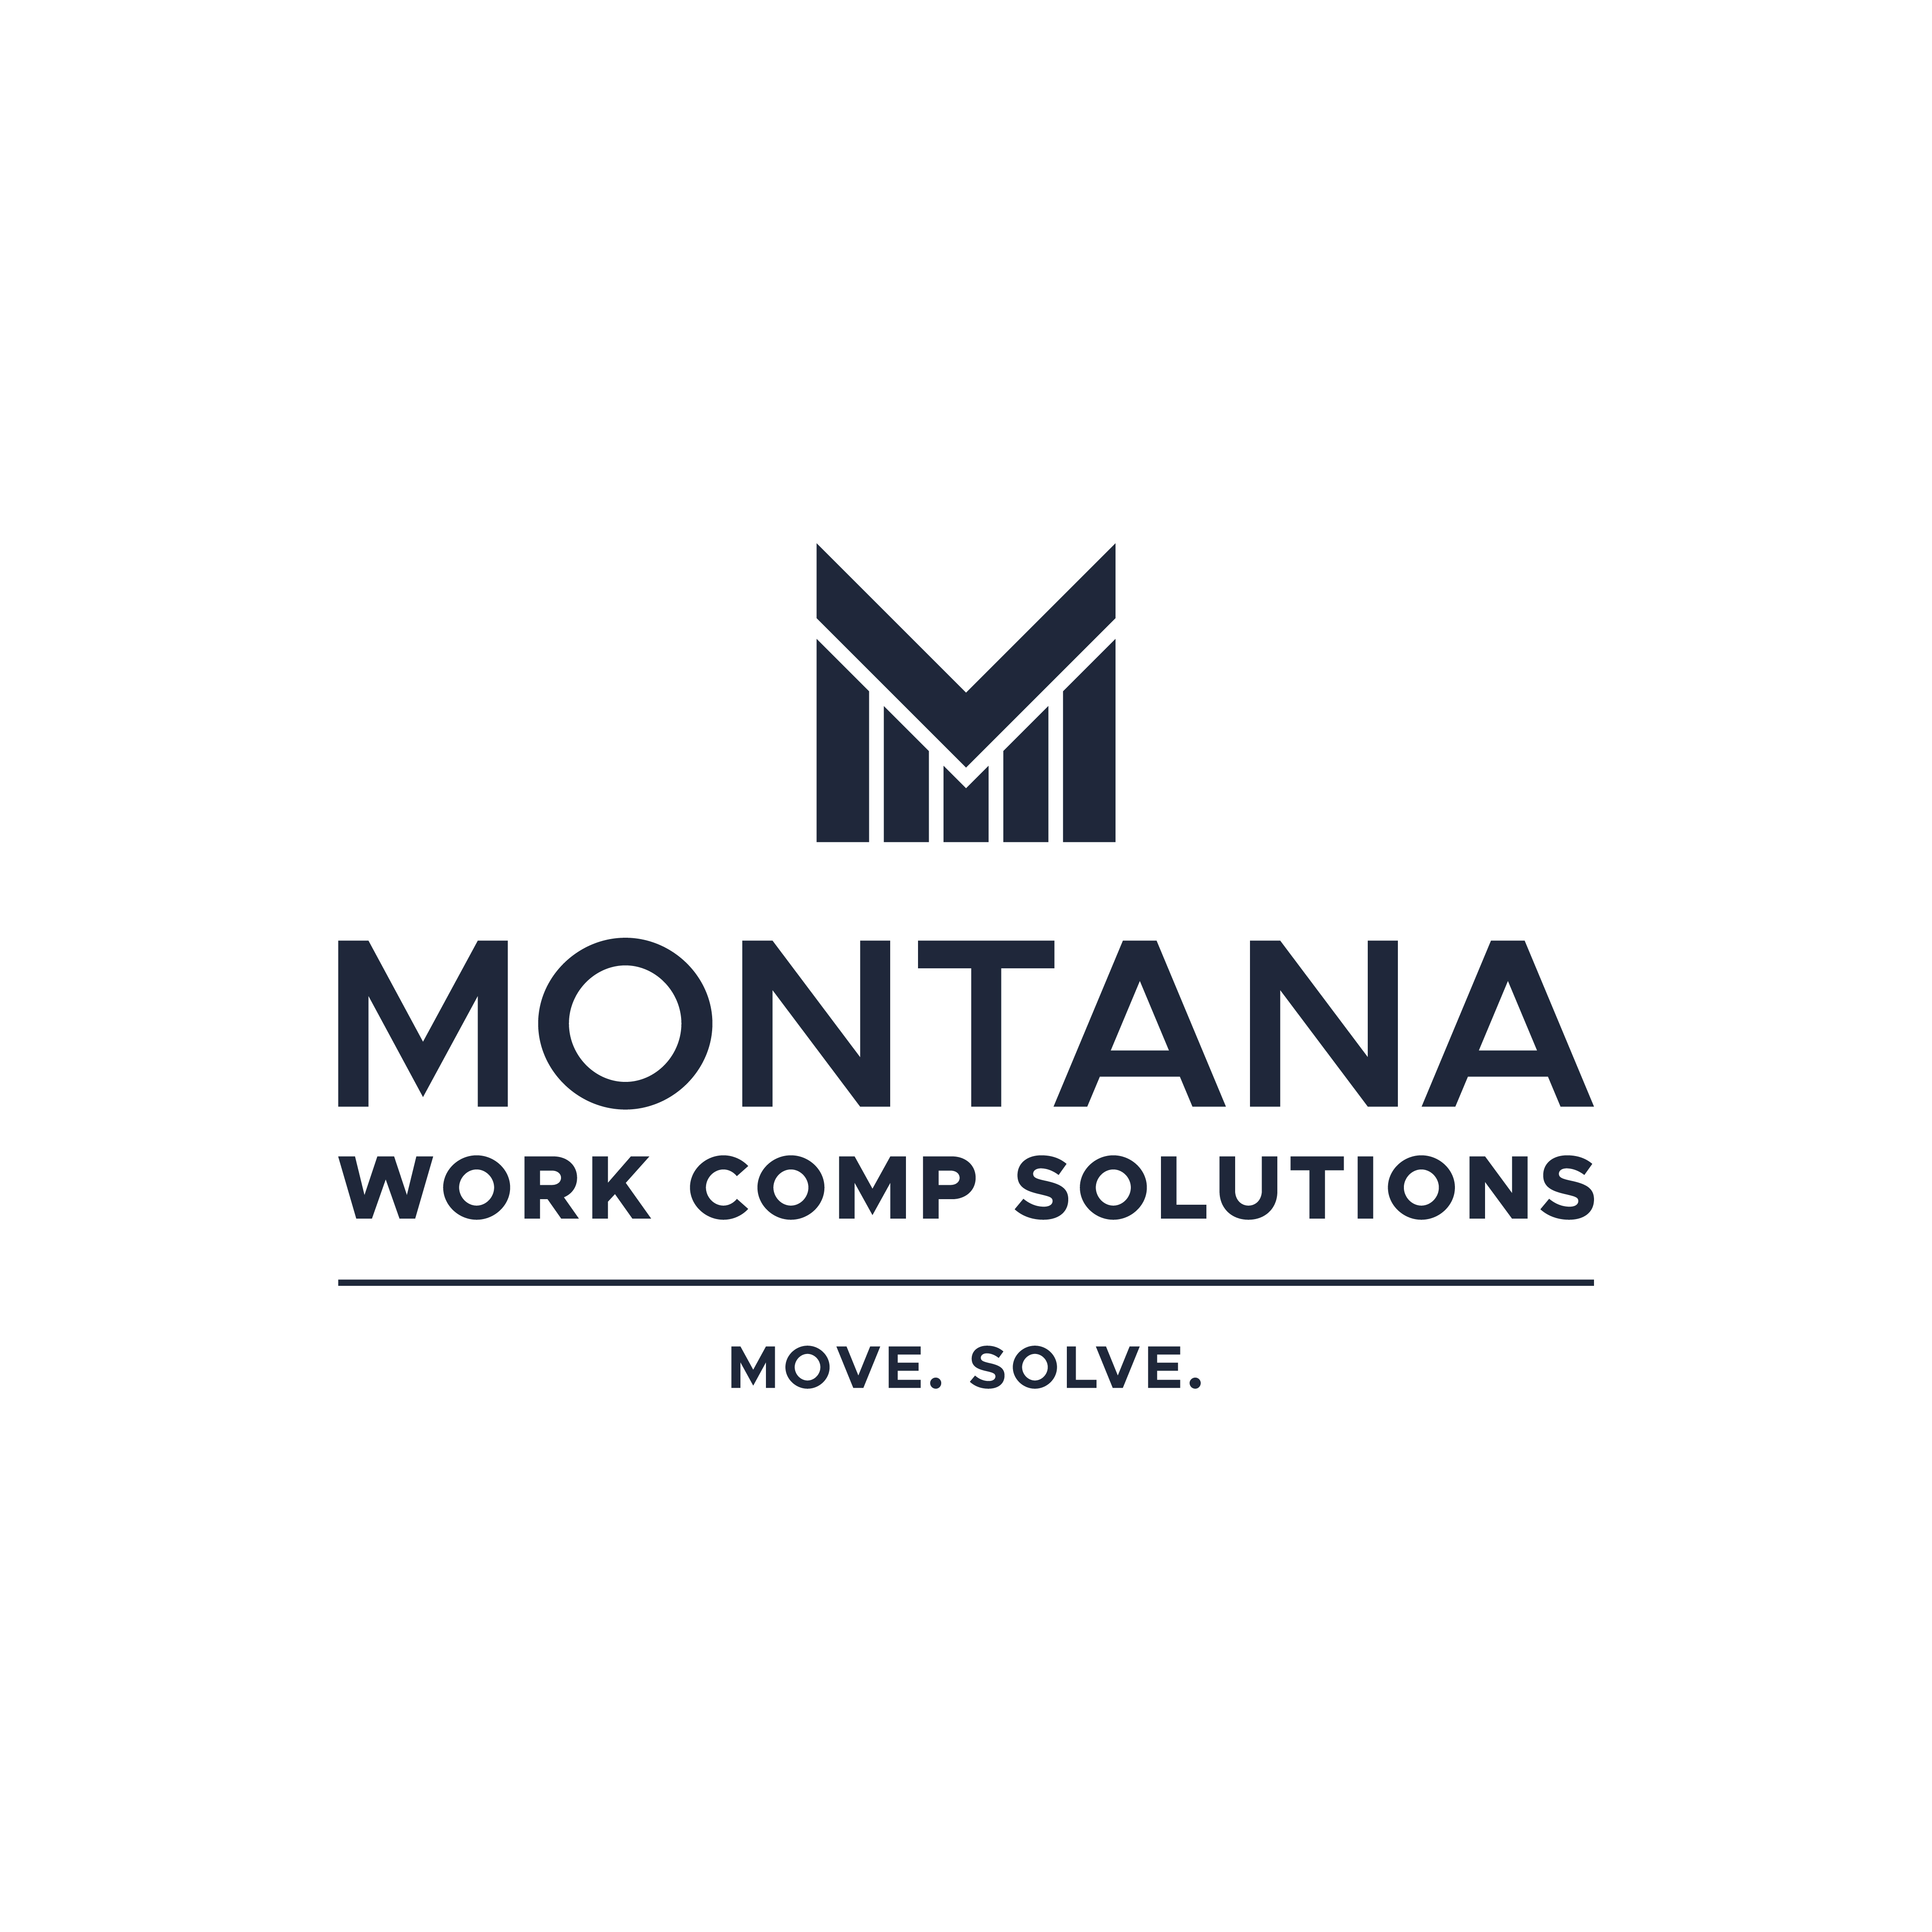 Montana Work Comp Solutions